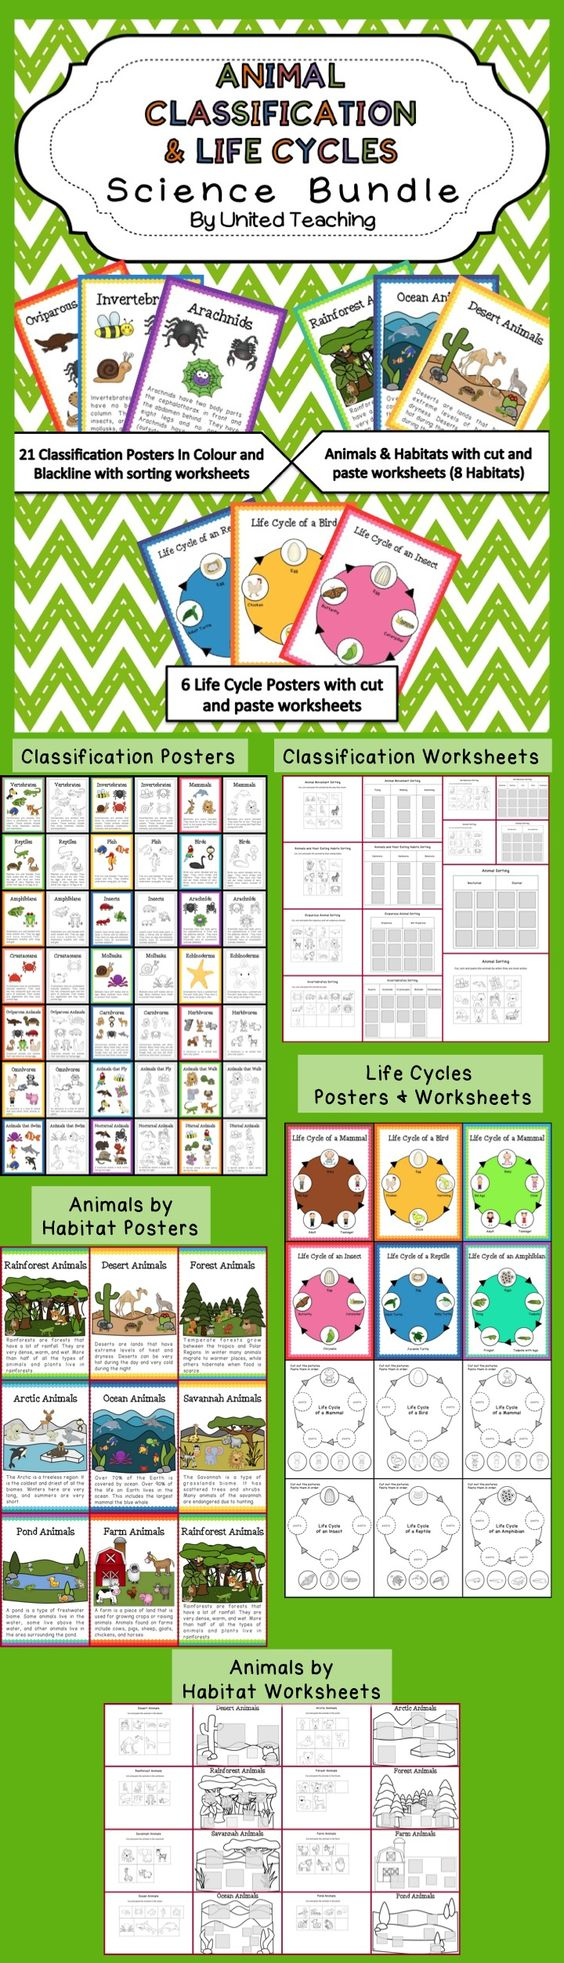 animal classification coloring worksheets and life cycles on pinterest. Black Bedroom Furniture Sets. Home Design Ideas